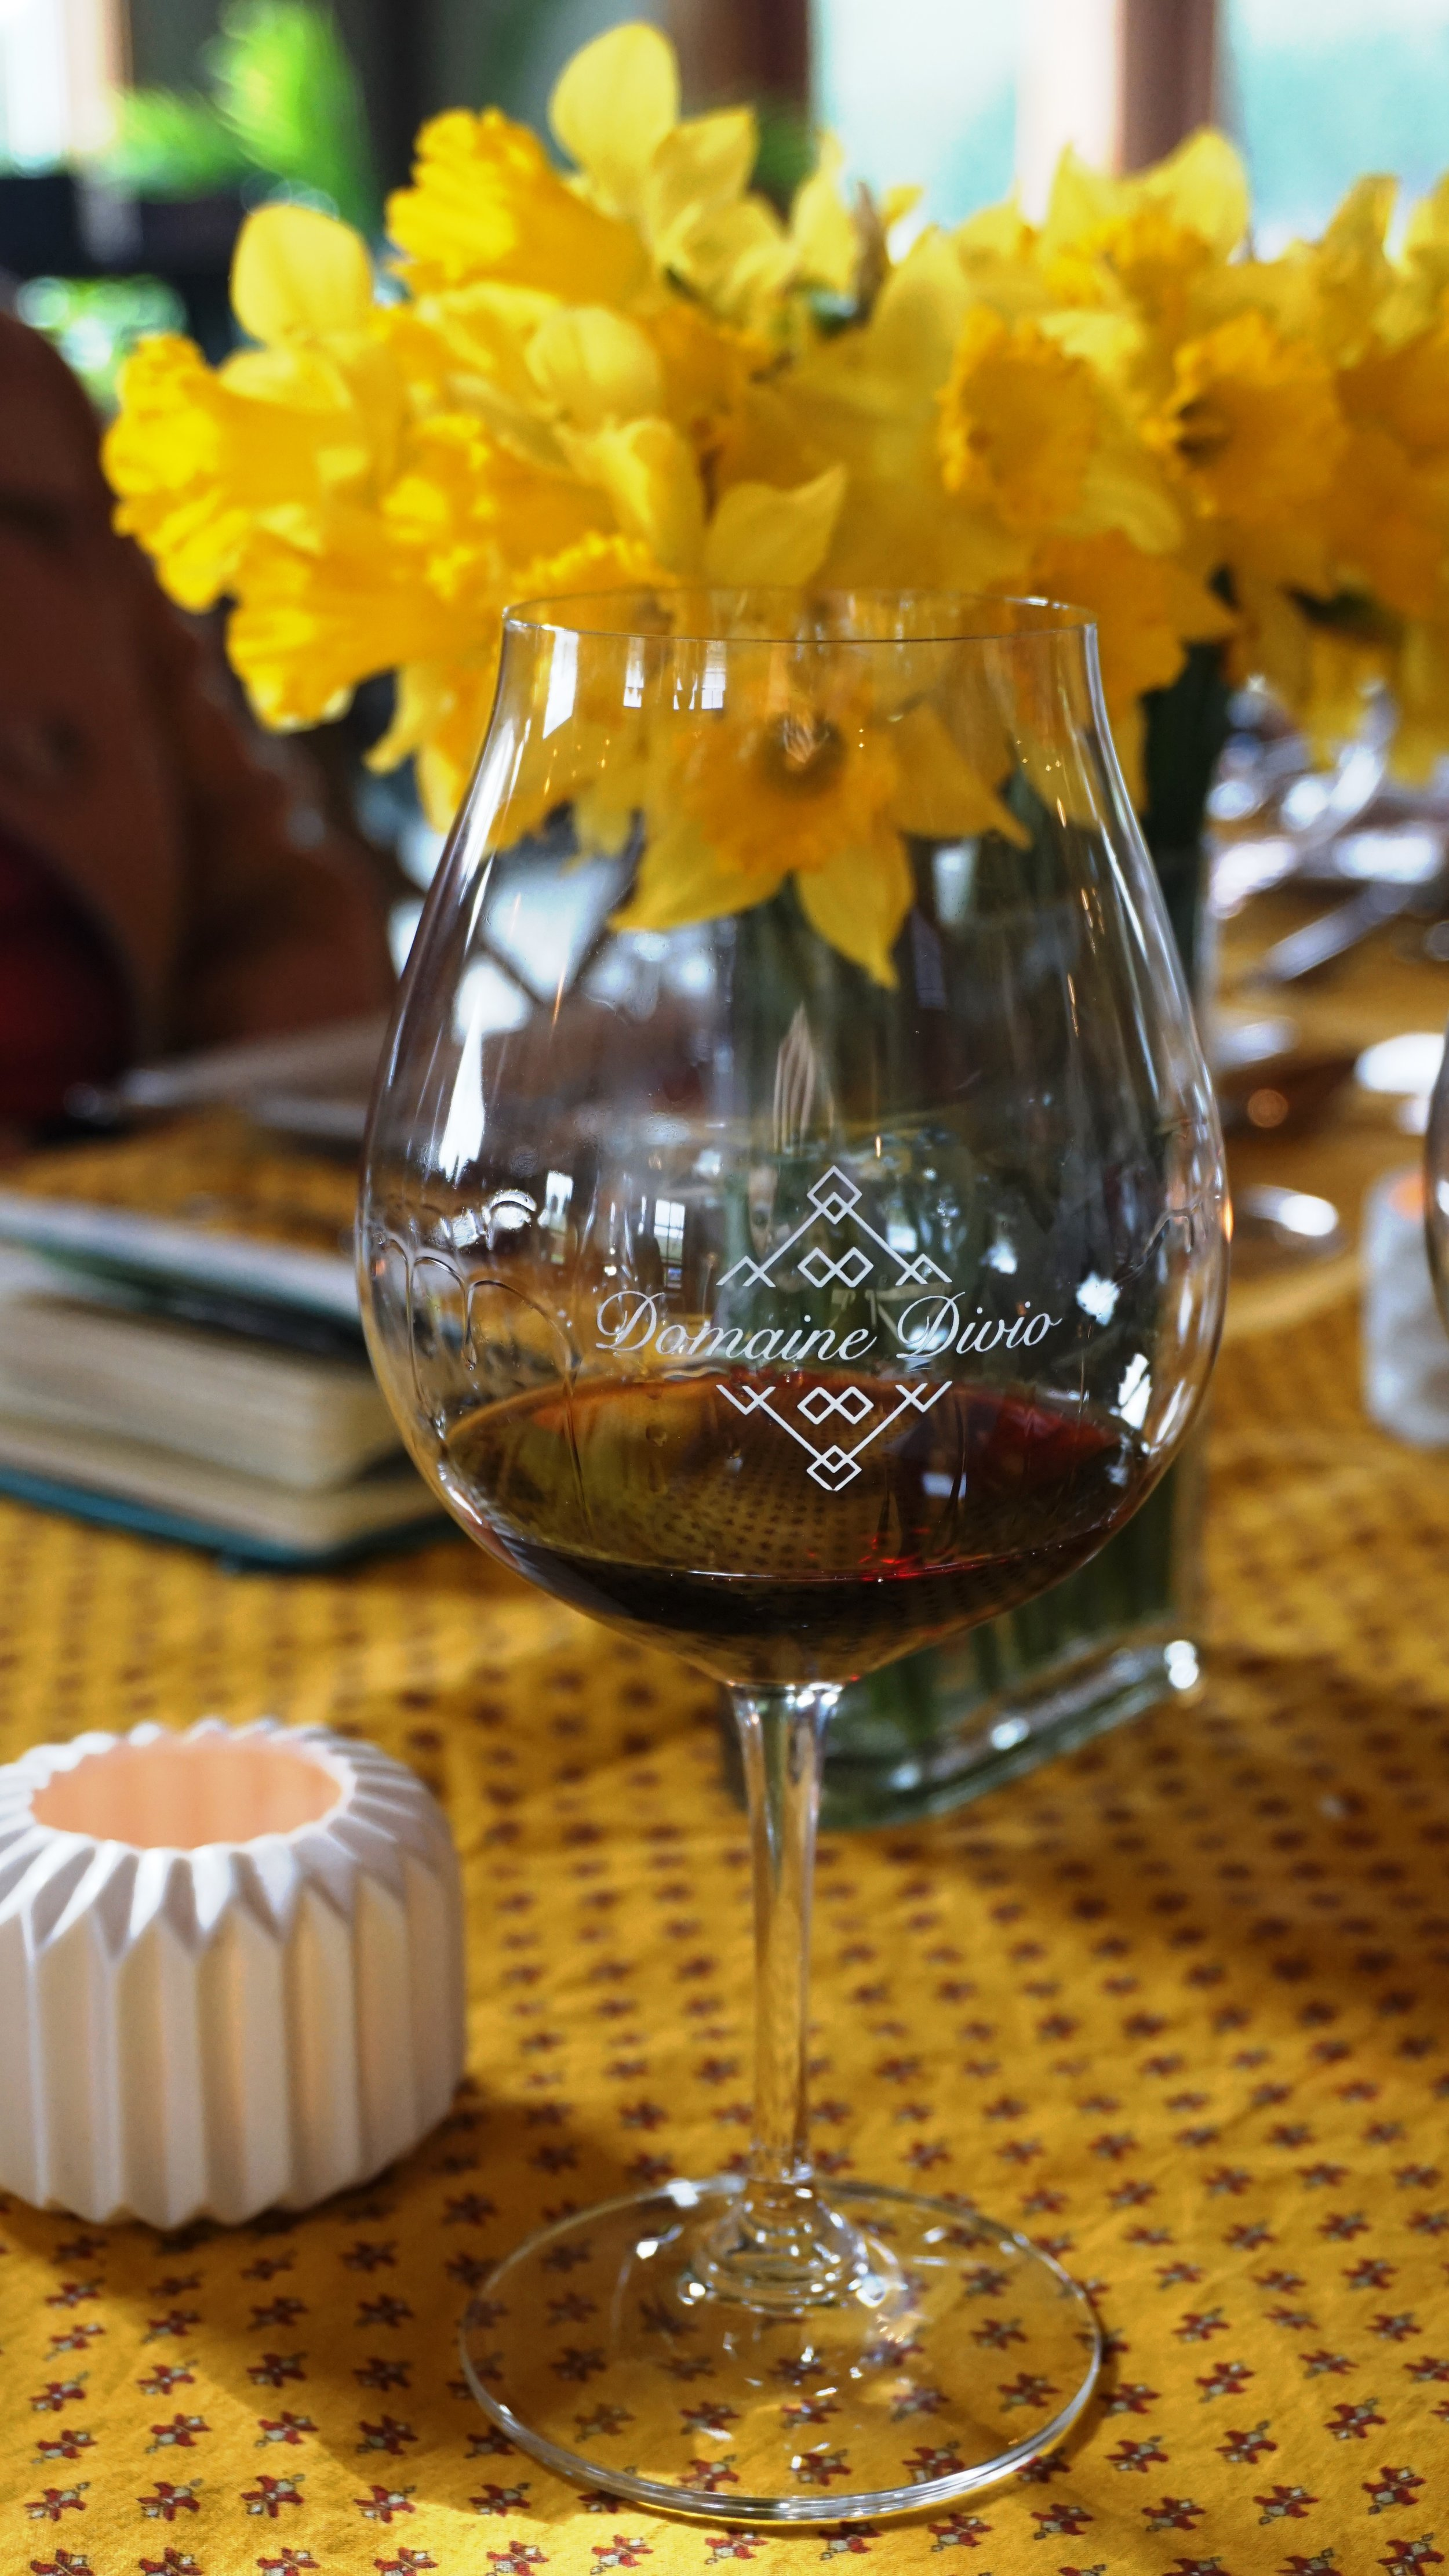 Domaine Divio's 2012 Pinot Noir is a luscious representation of the earthy pinots that Oregon is world-renowned for with beautiful hints of spice. Viki Eierdam